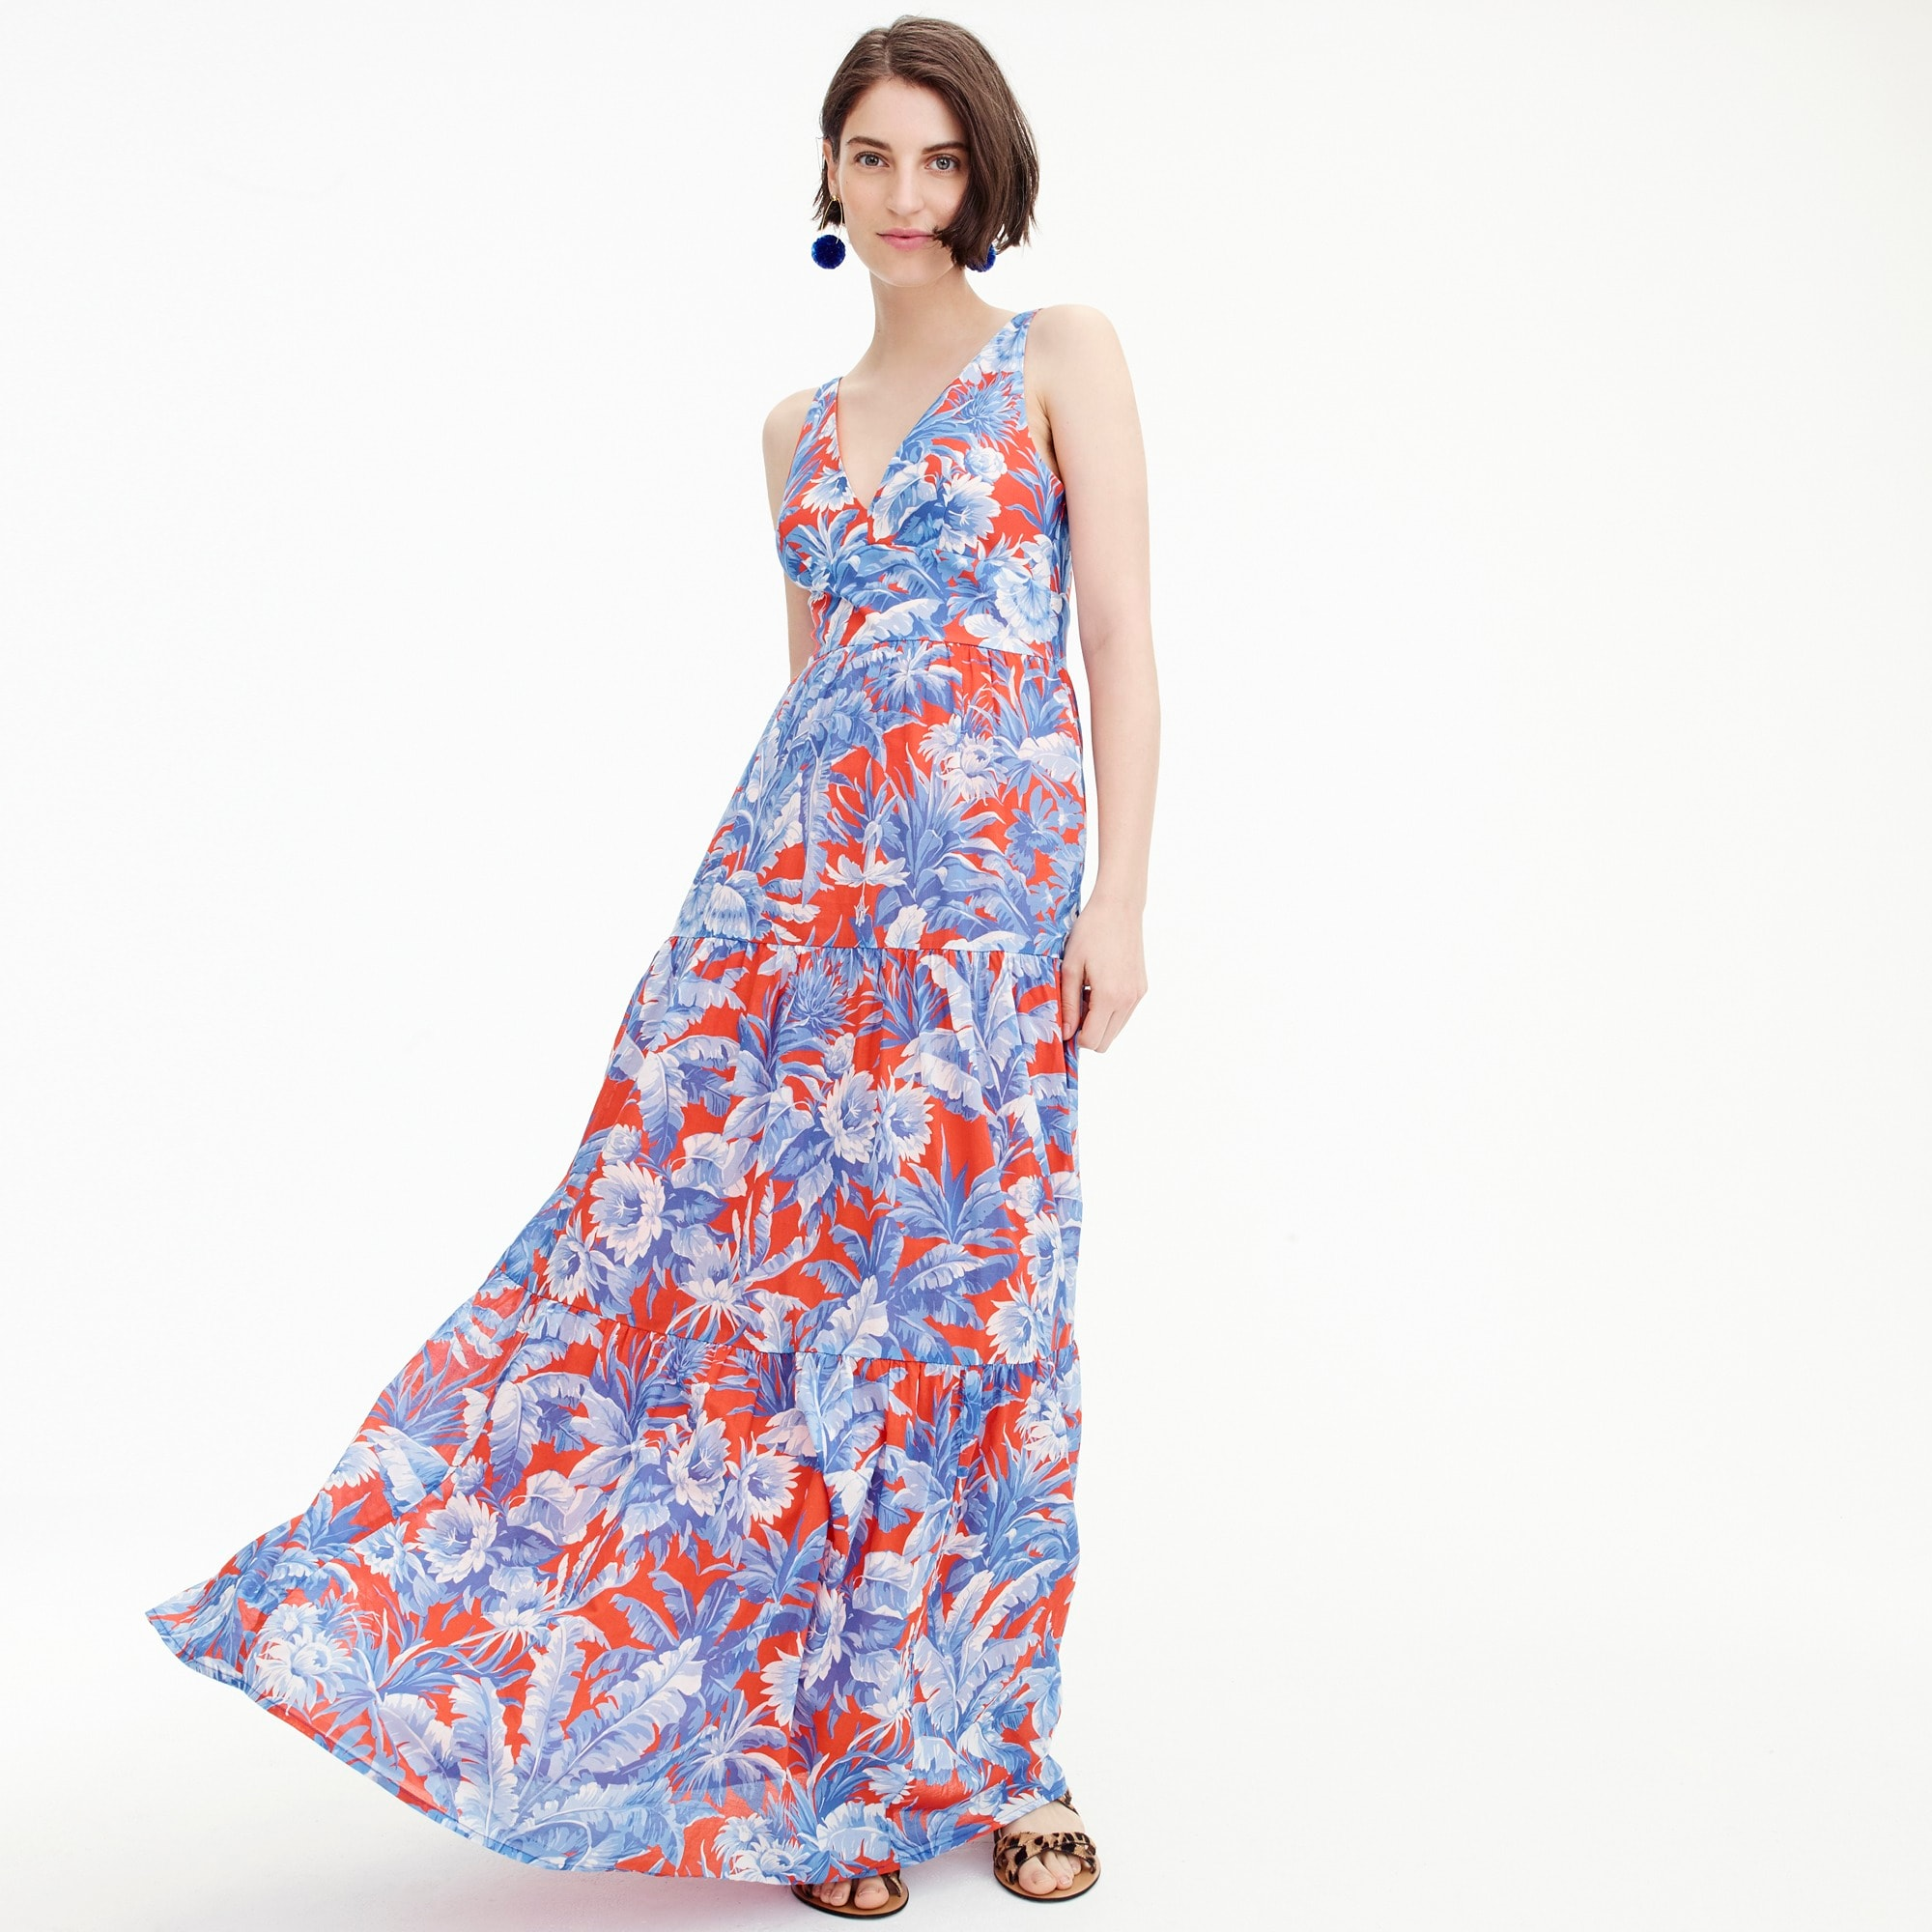 V-neck maxi dress in Ratti® Rio floral women new arrivals c